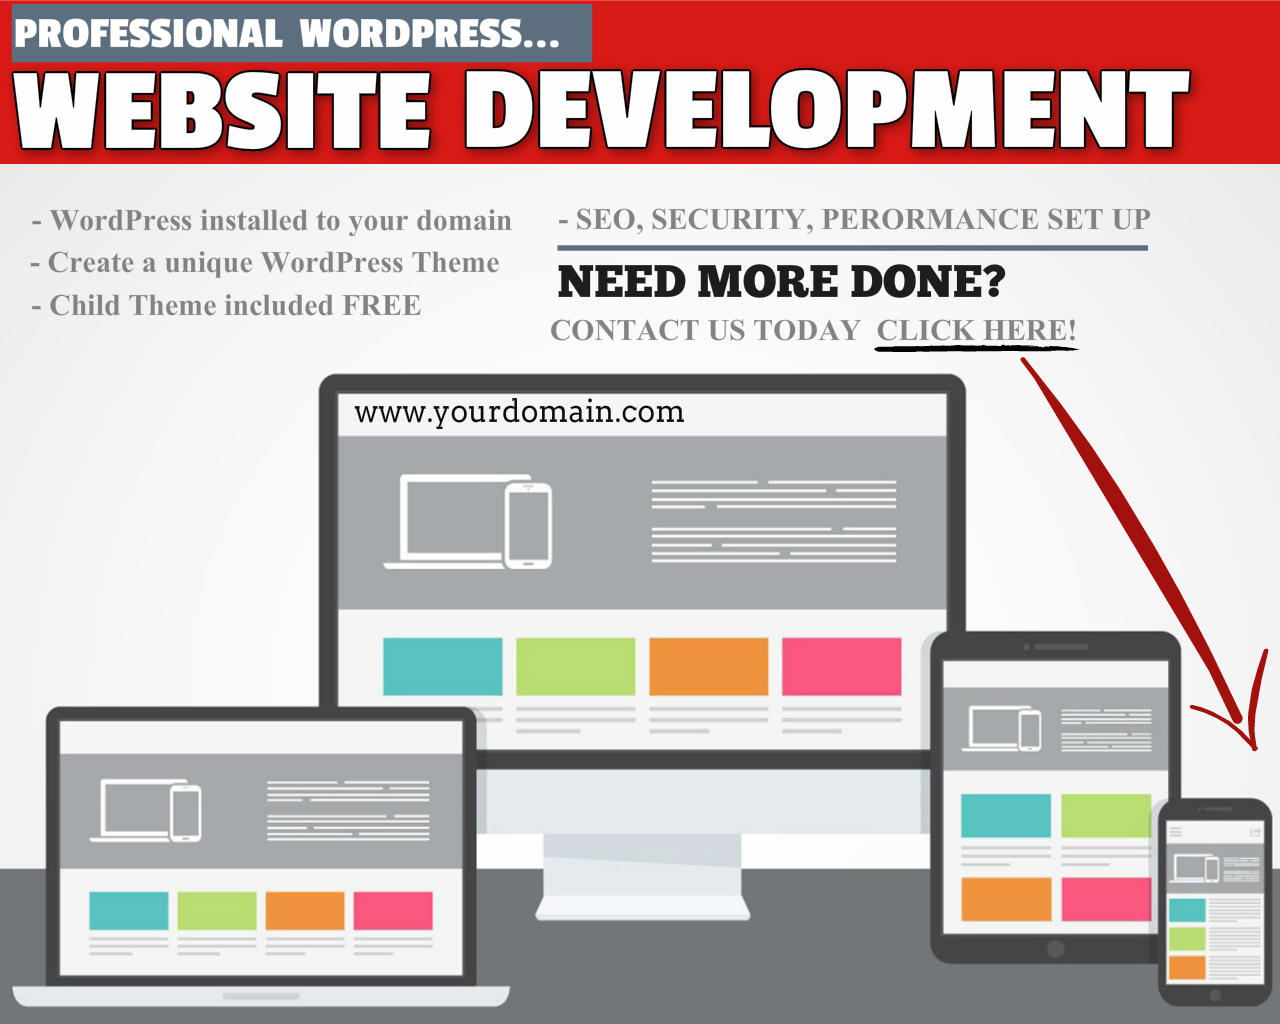 HTML / WordPress Responsive Website Design and Development by WPJunkiez - 99254